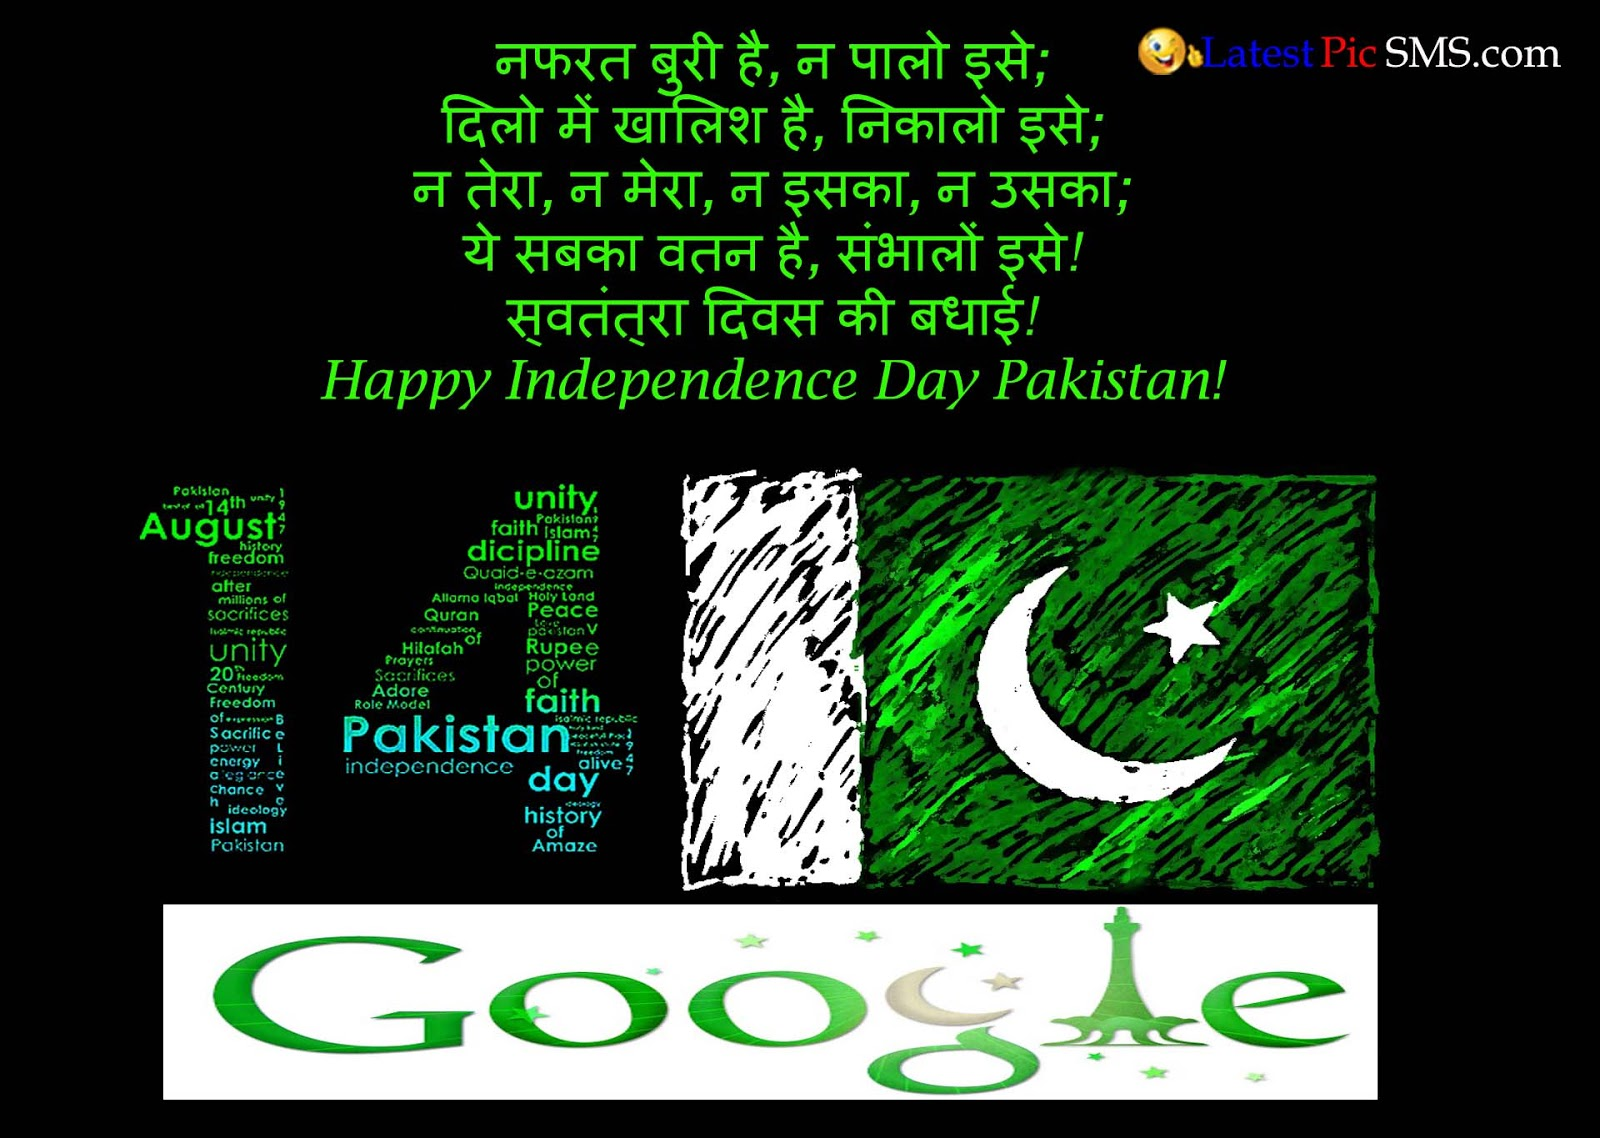 Happy Independence day Pakistan photos